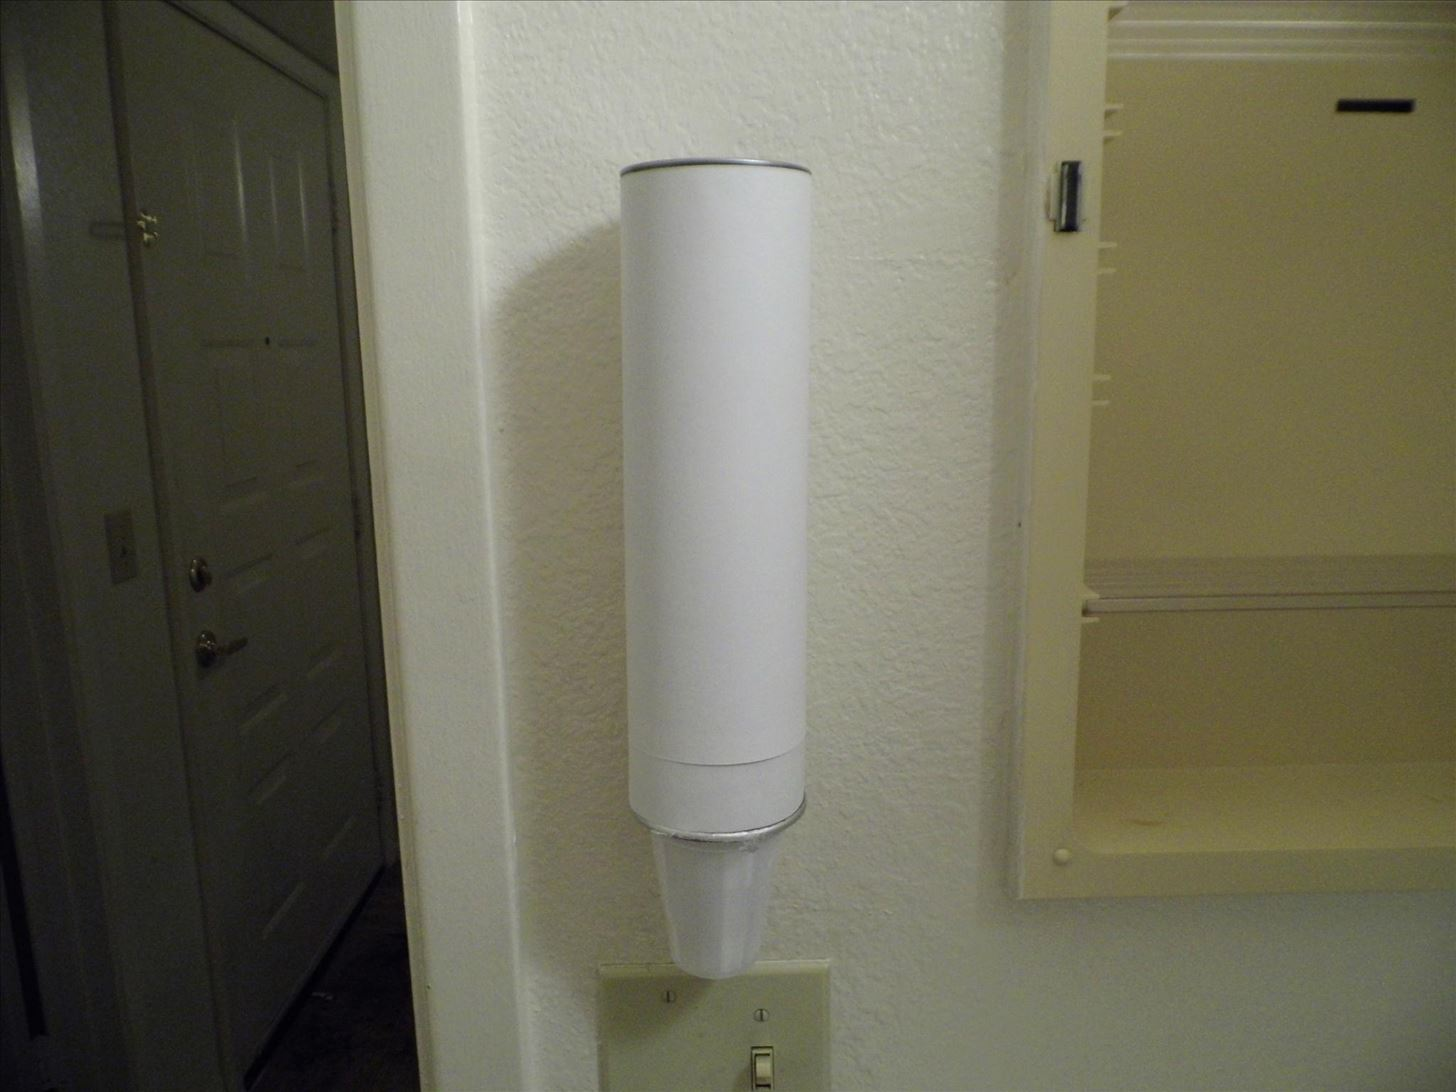 5 Ounce Cup Dispensers Wall